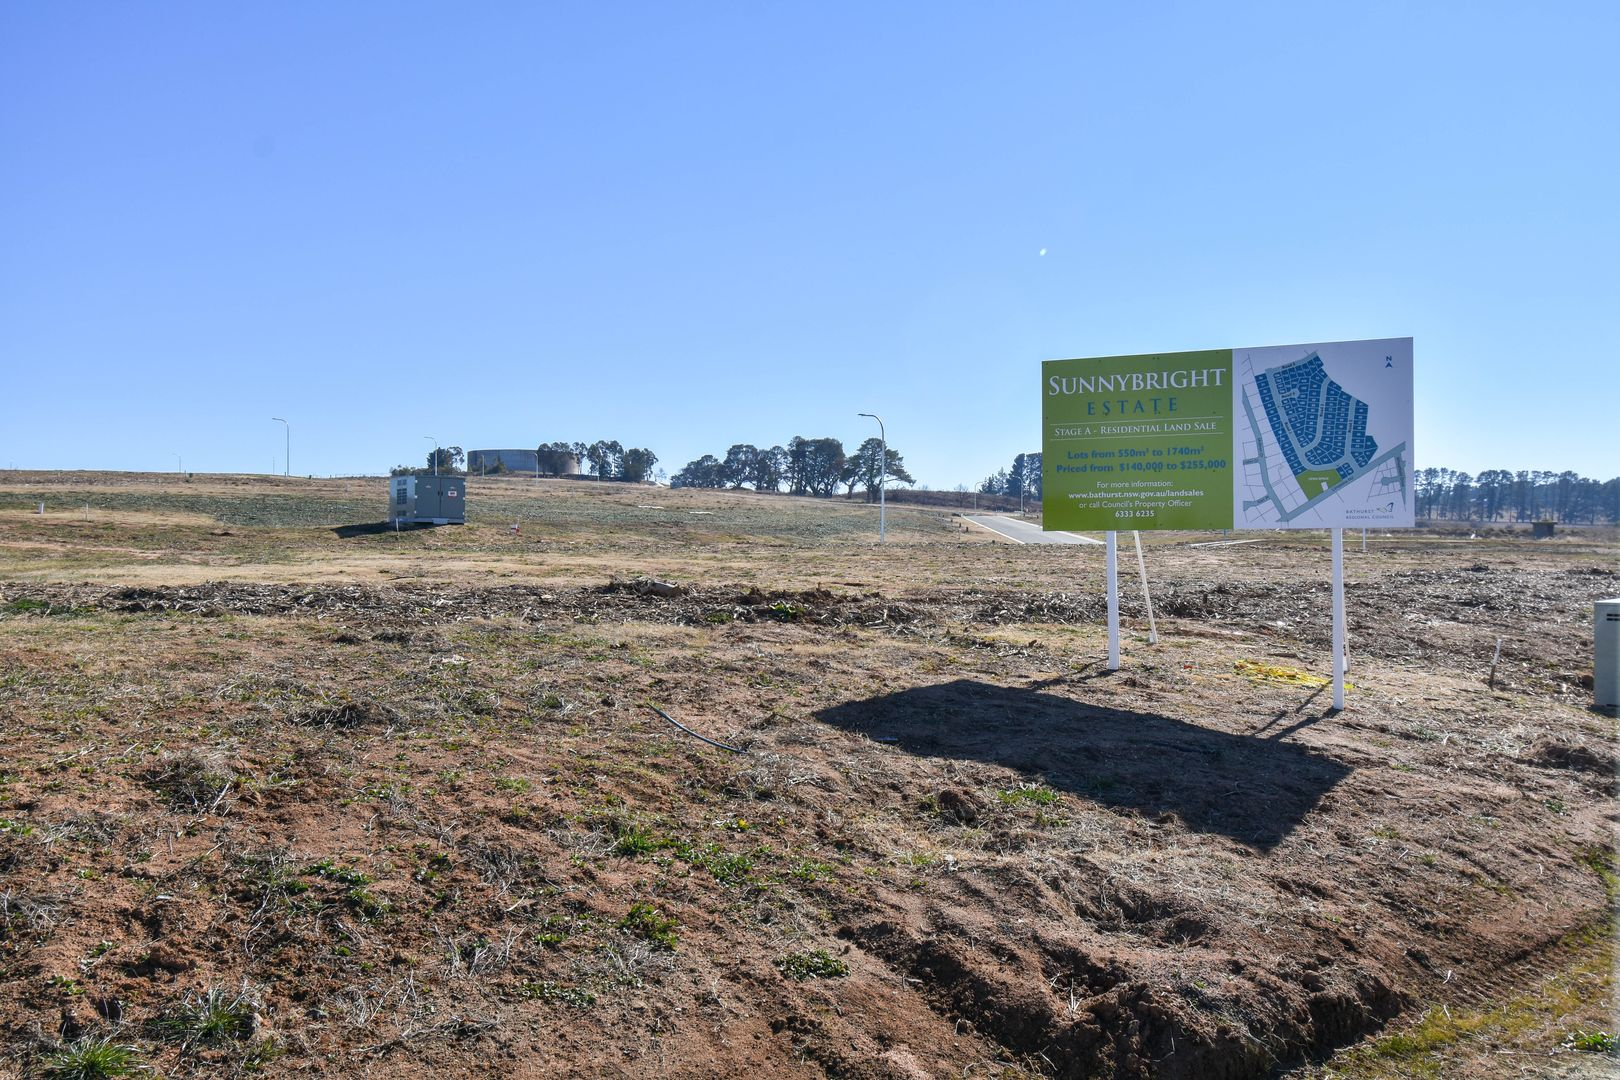 Lot 20 - 115 Sunnybright Estate Stage A, Kelso NSW 2795, Image 1